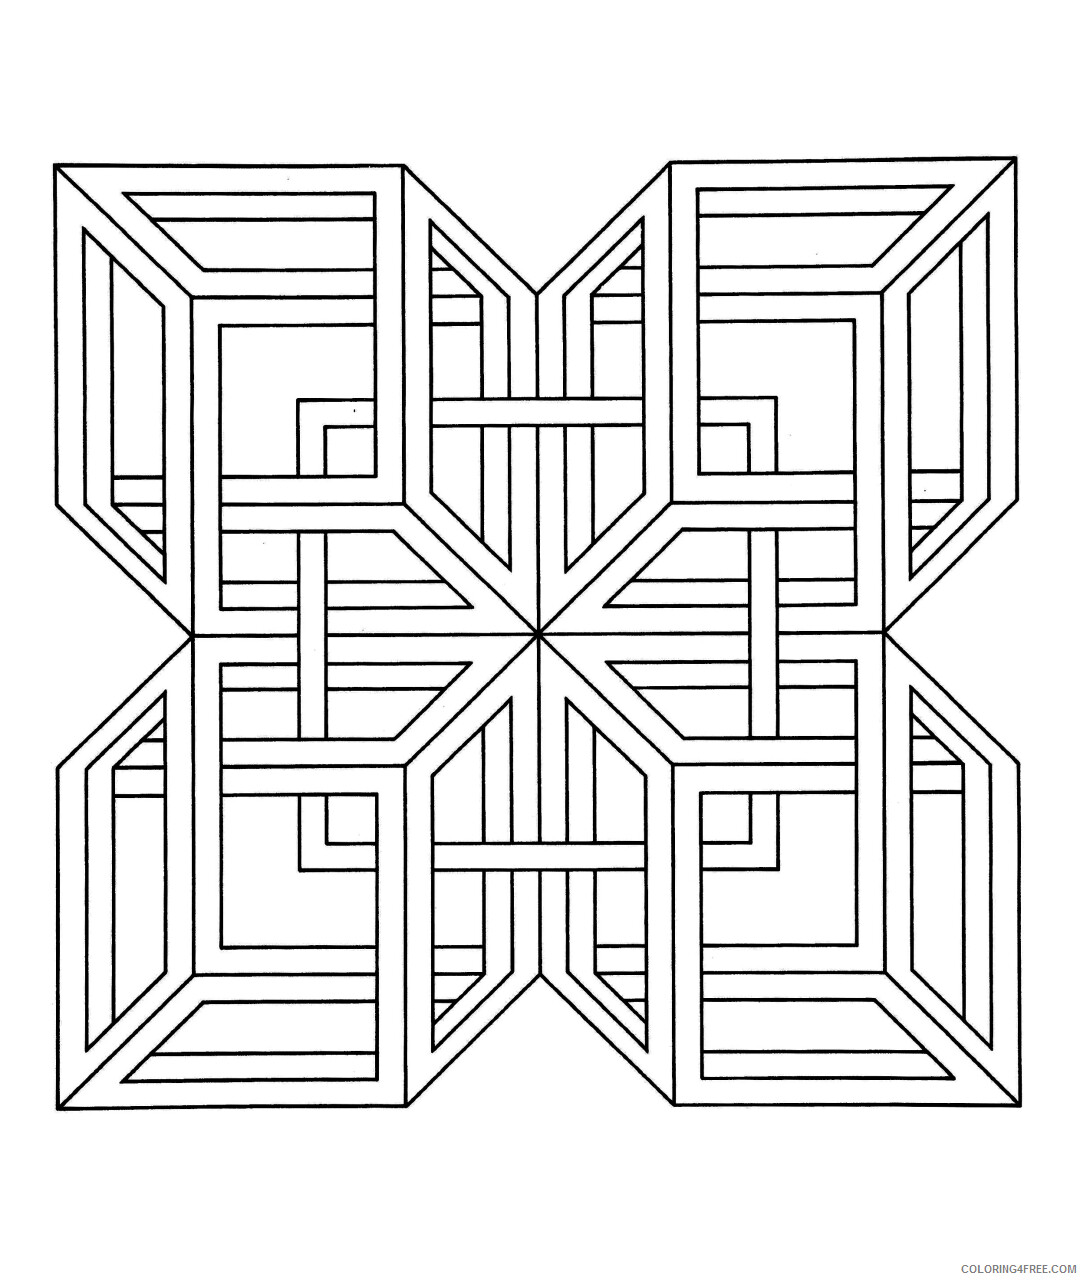 Geometric Design Coloring Pages Adult hard to print out 25781 Printable 2020 411 Coloring4free